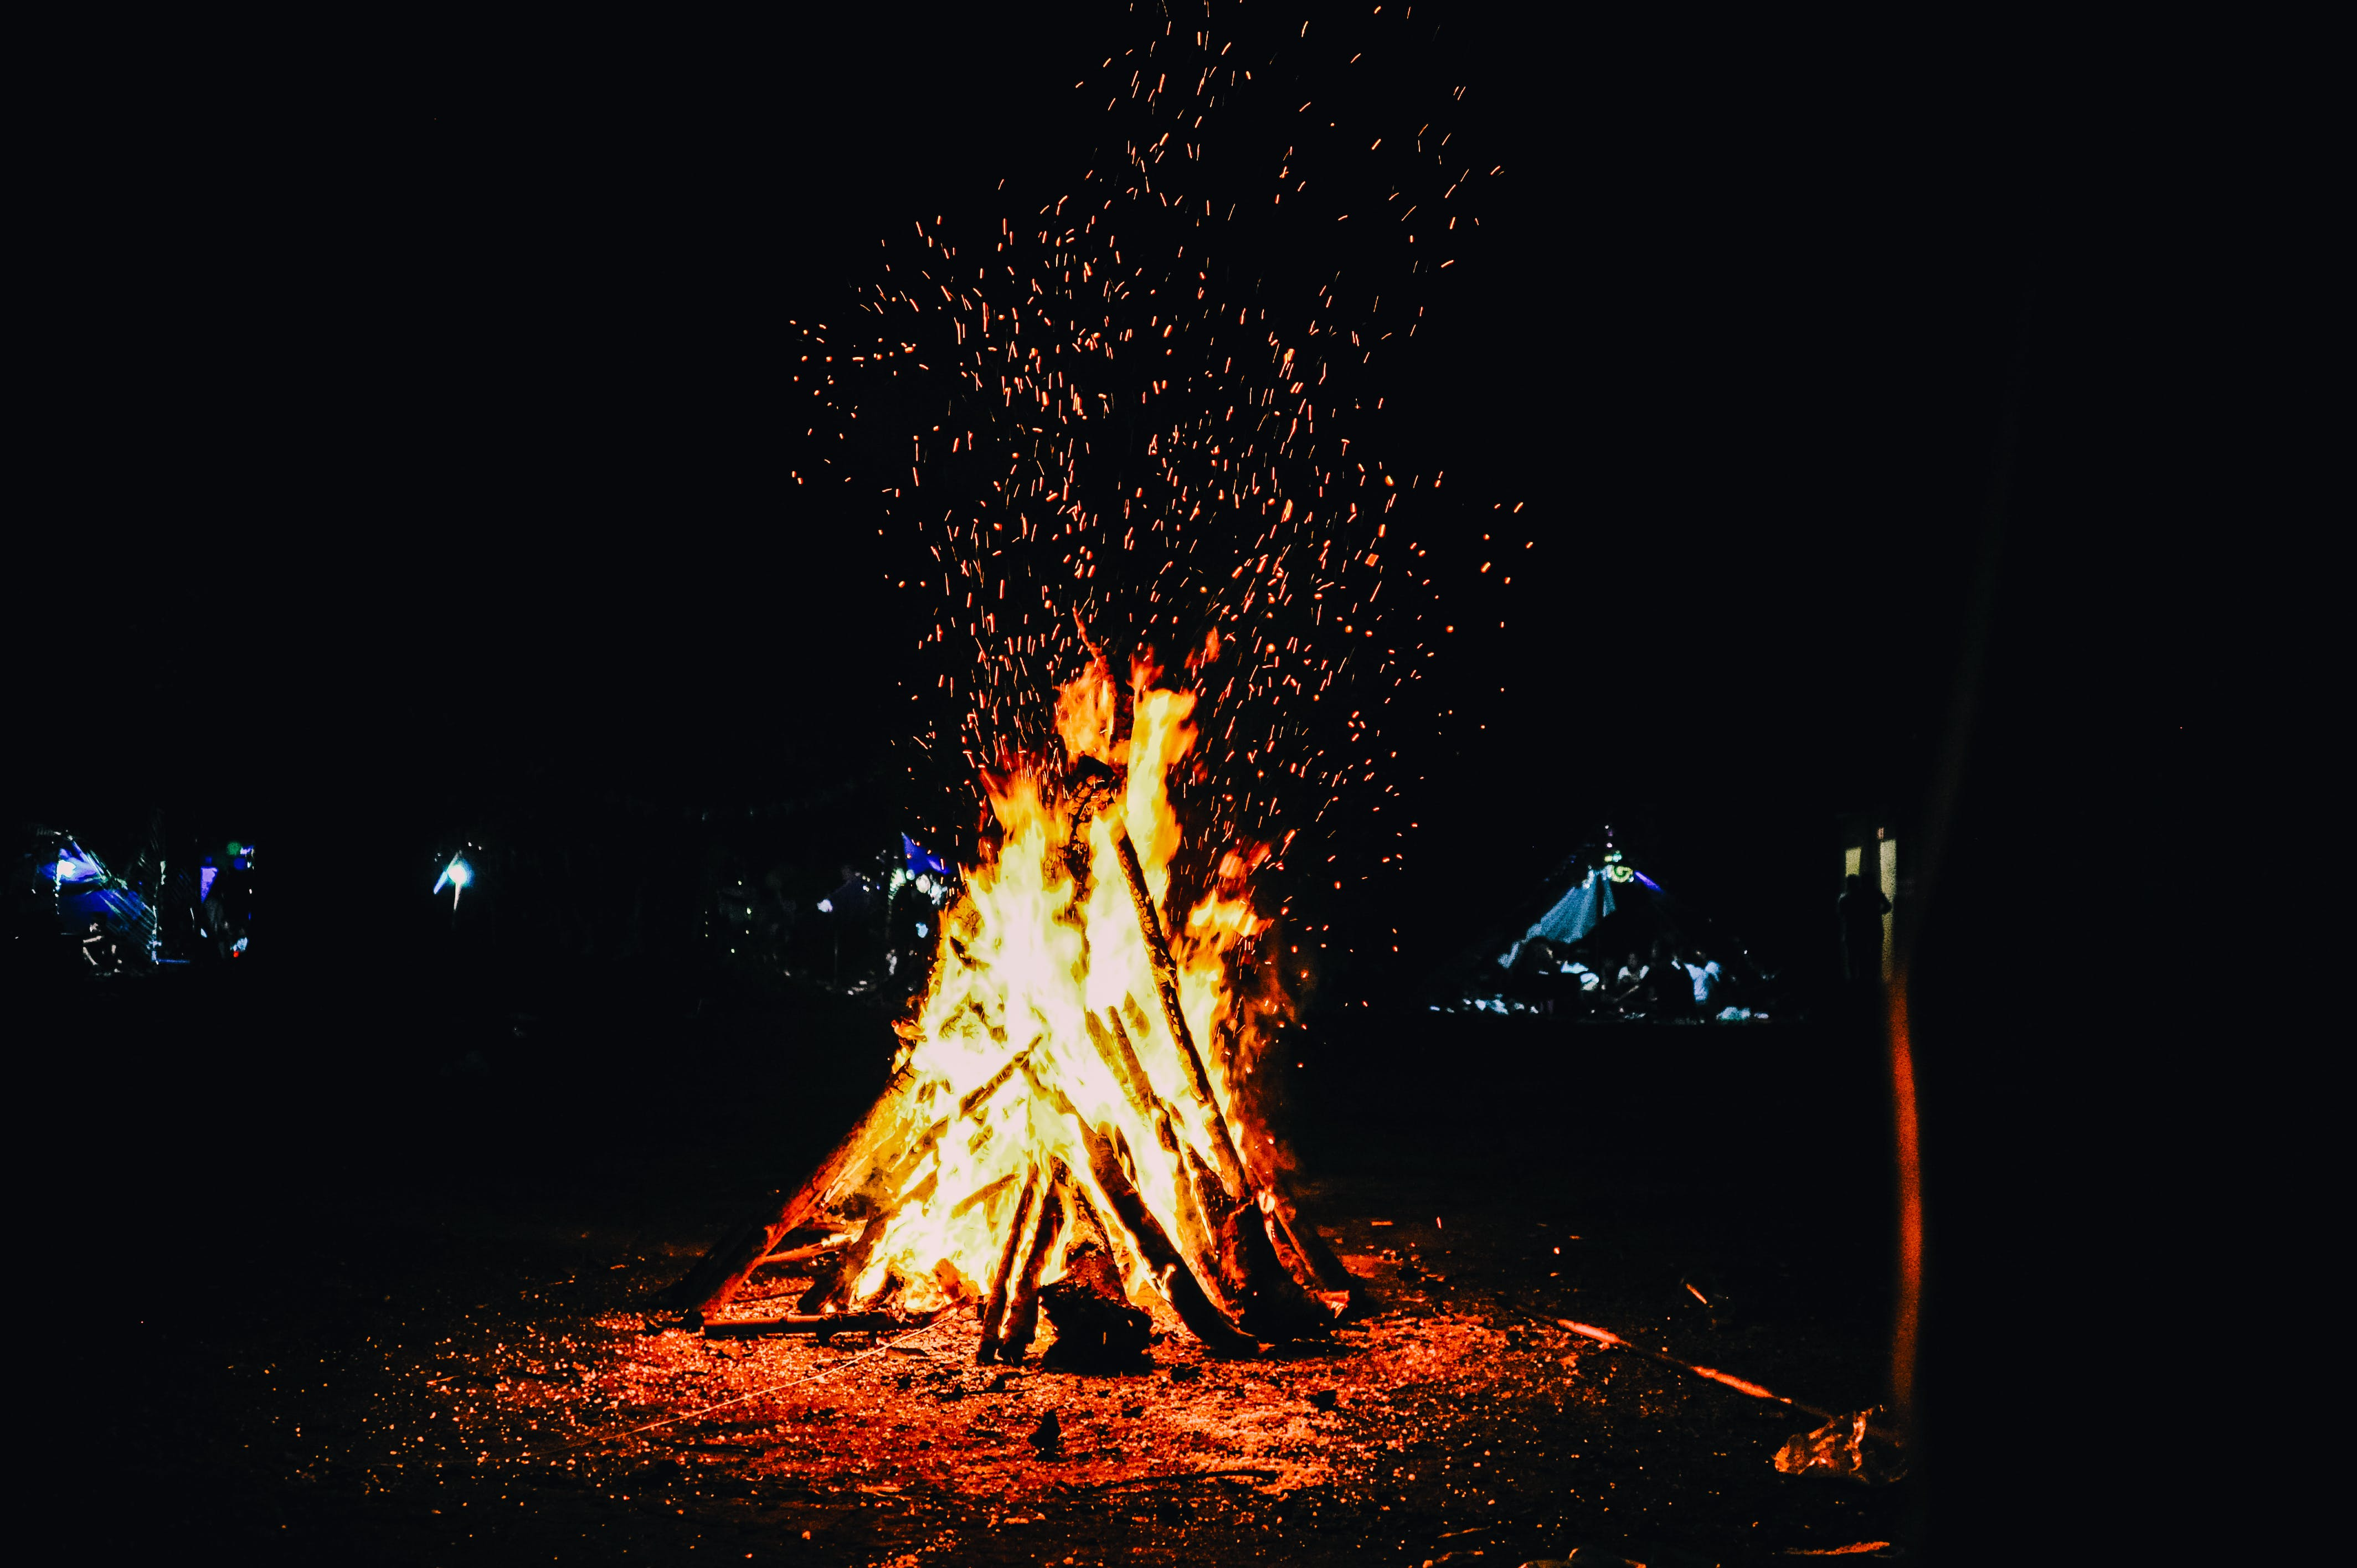 Bonfire During Evening